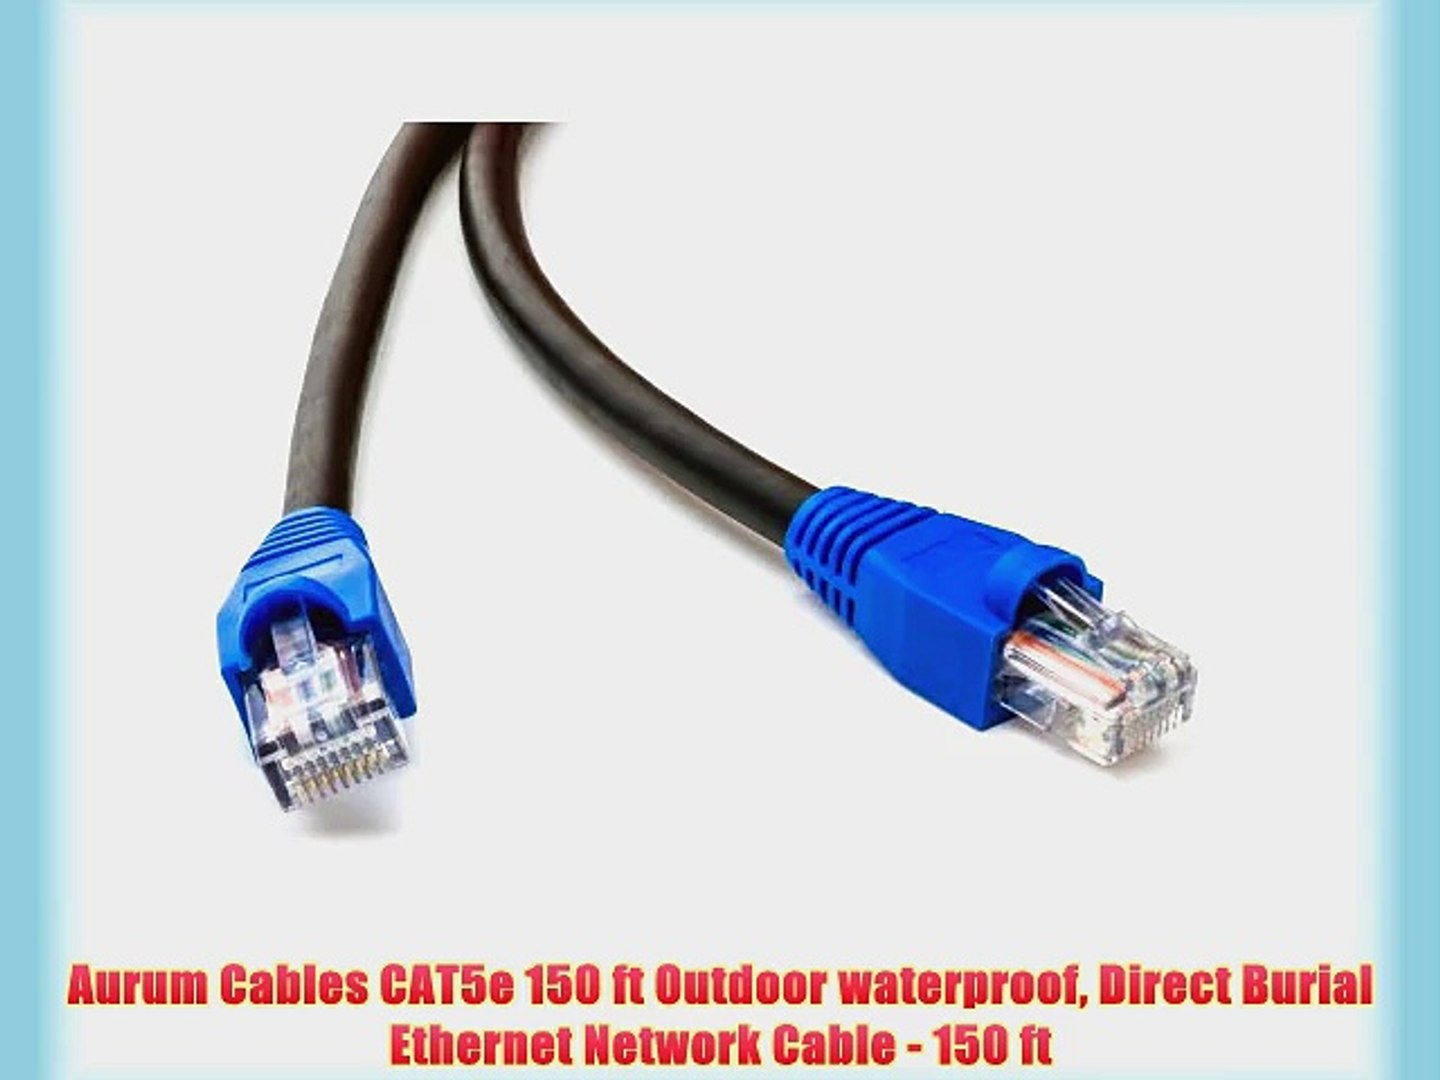 100FT CAT5 e OUTDOOR UNDERGROUND BURIAL CABLE WIRE WATERPROOF UV Copper 24-AWG